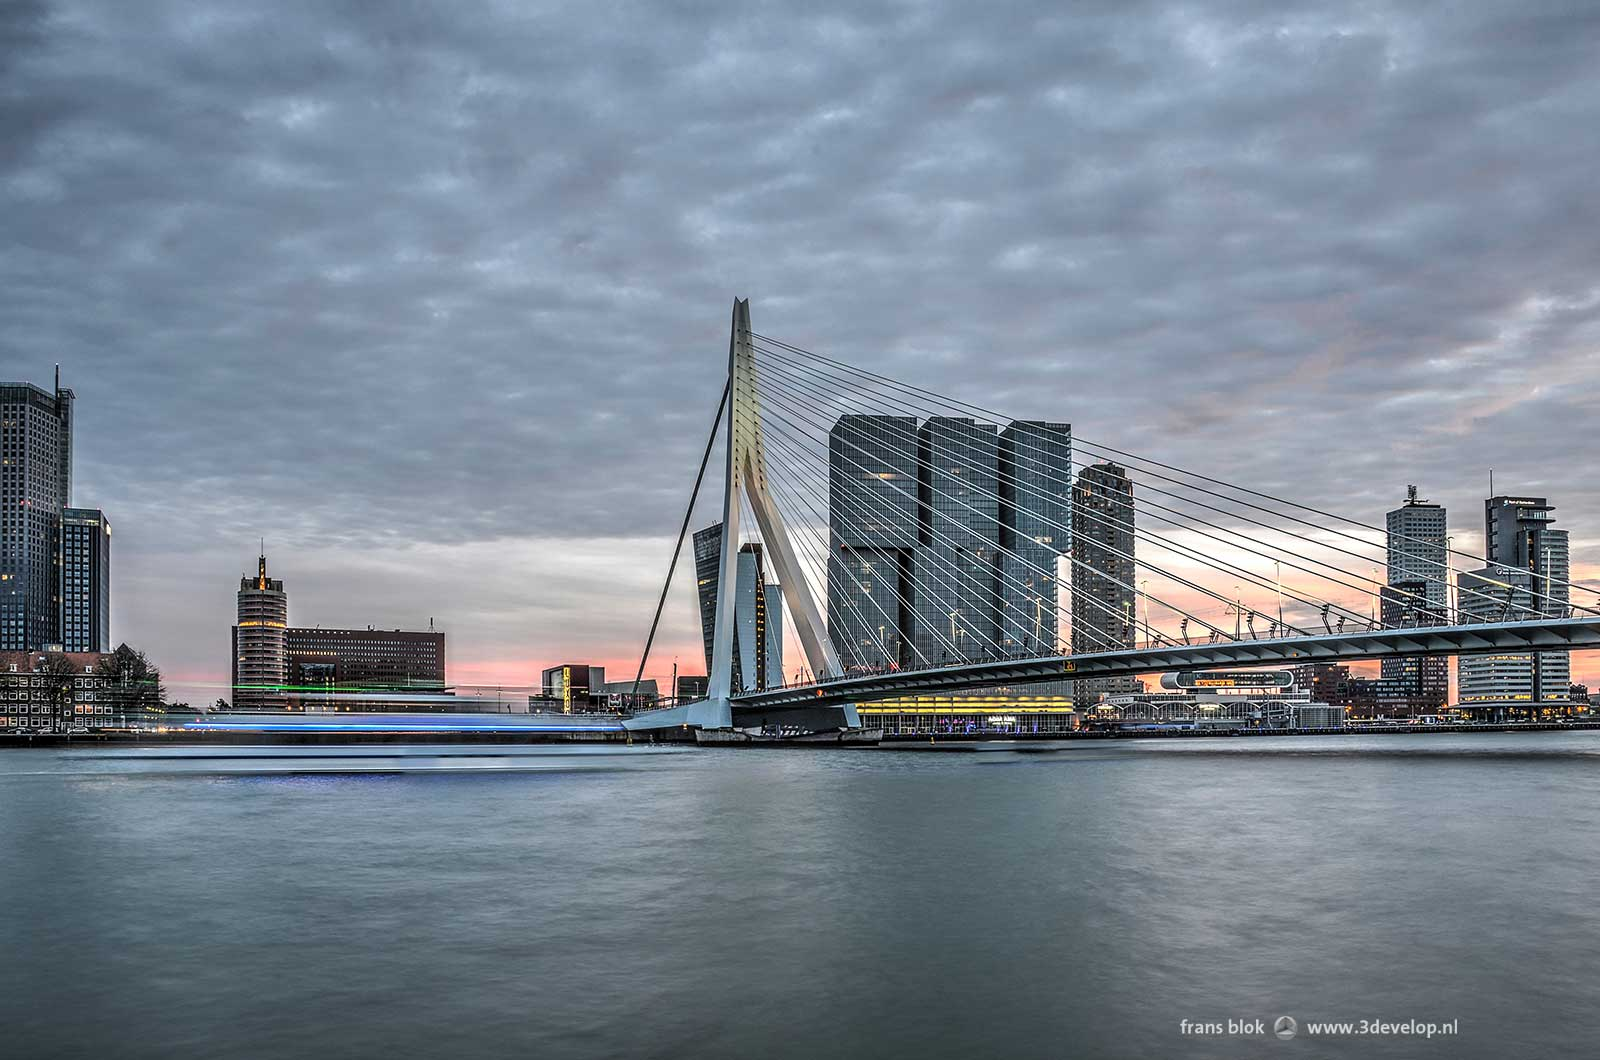 Evening image of the river Nieuwe Maas, Erasmus Bridge and Kop van Zuid neighbourhood in Rotterdam